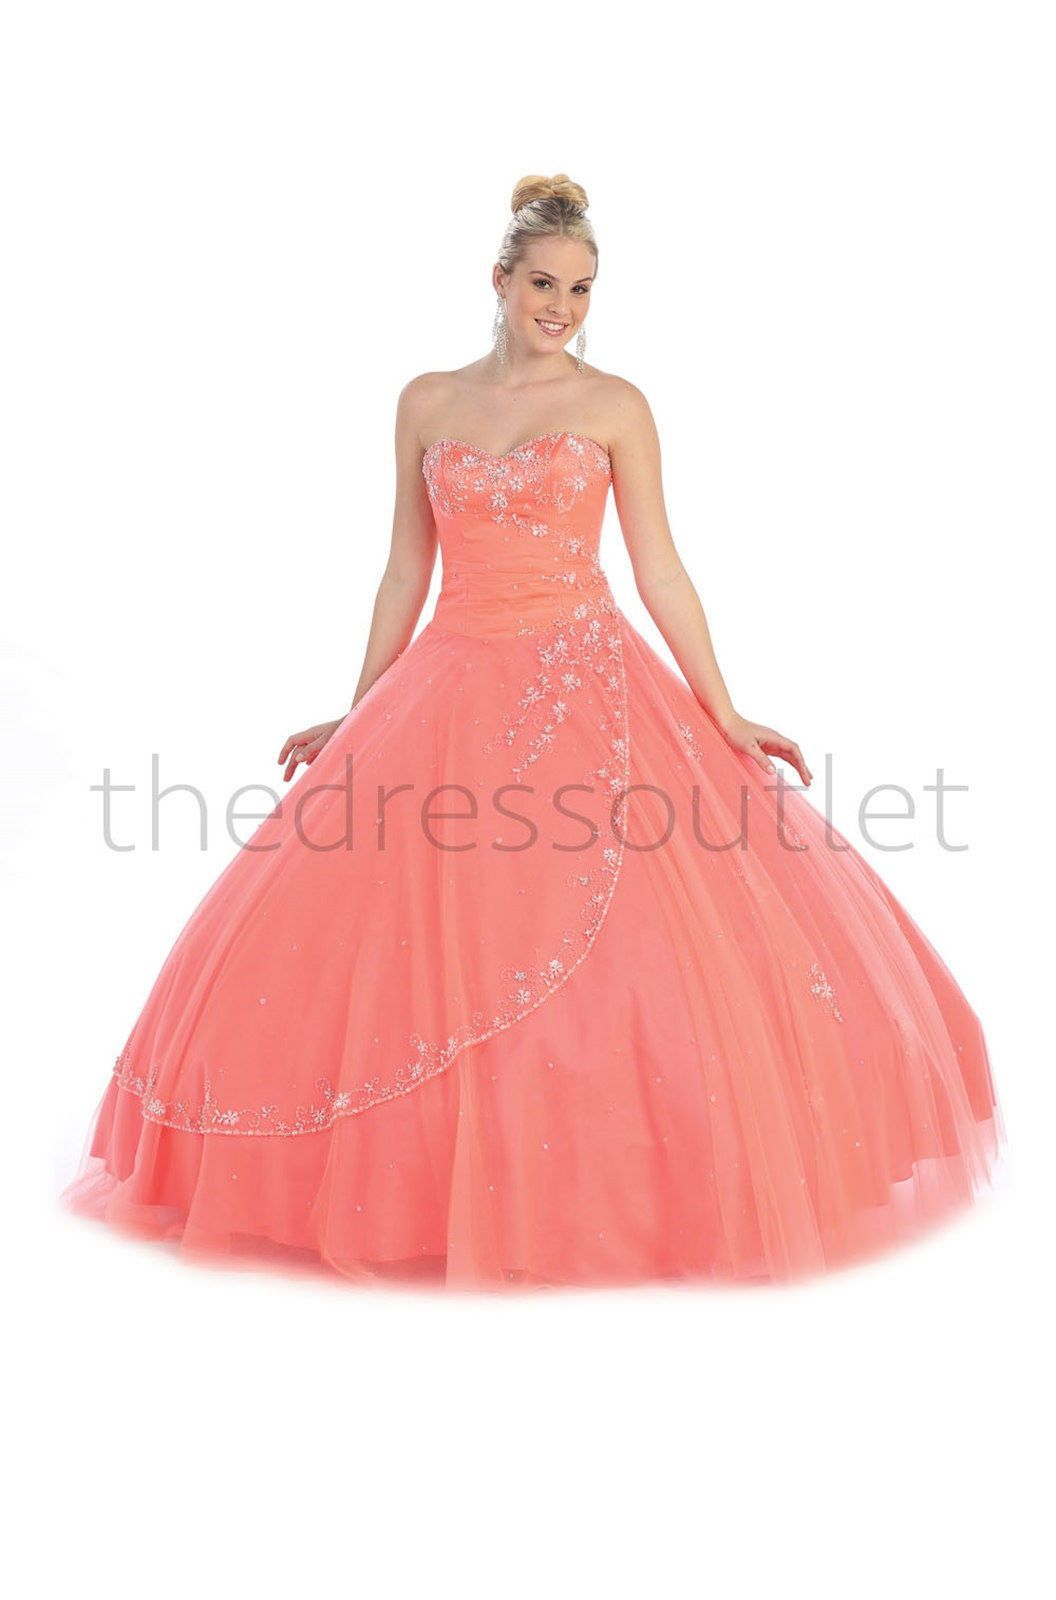 Quinceanera long ball gown sweet dress in مدل